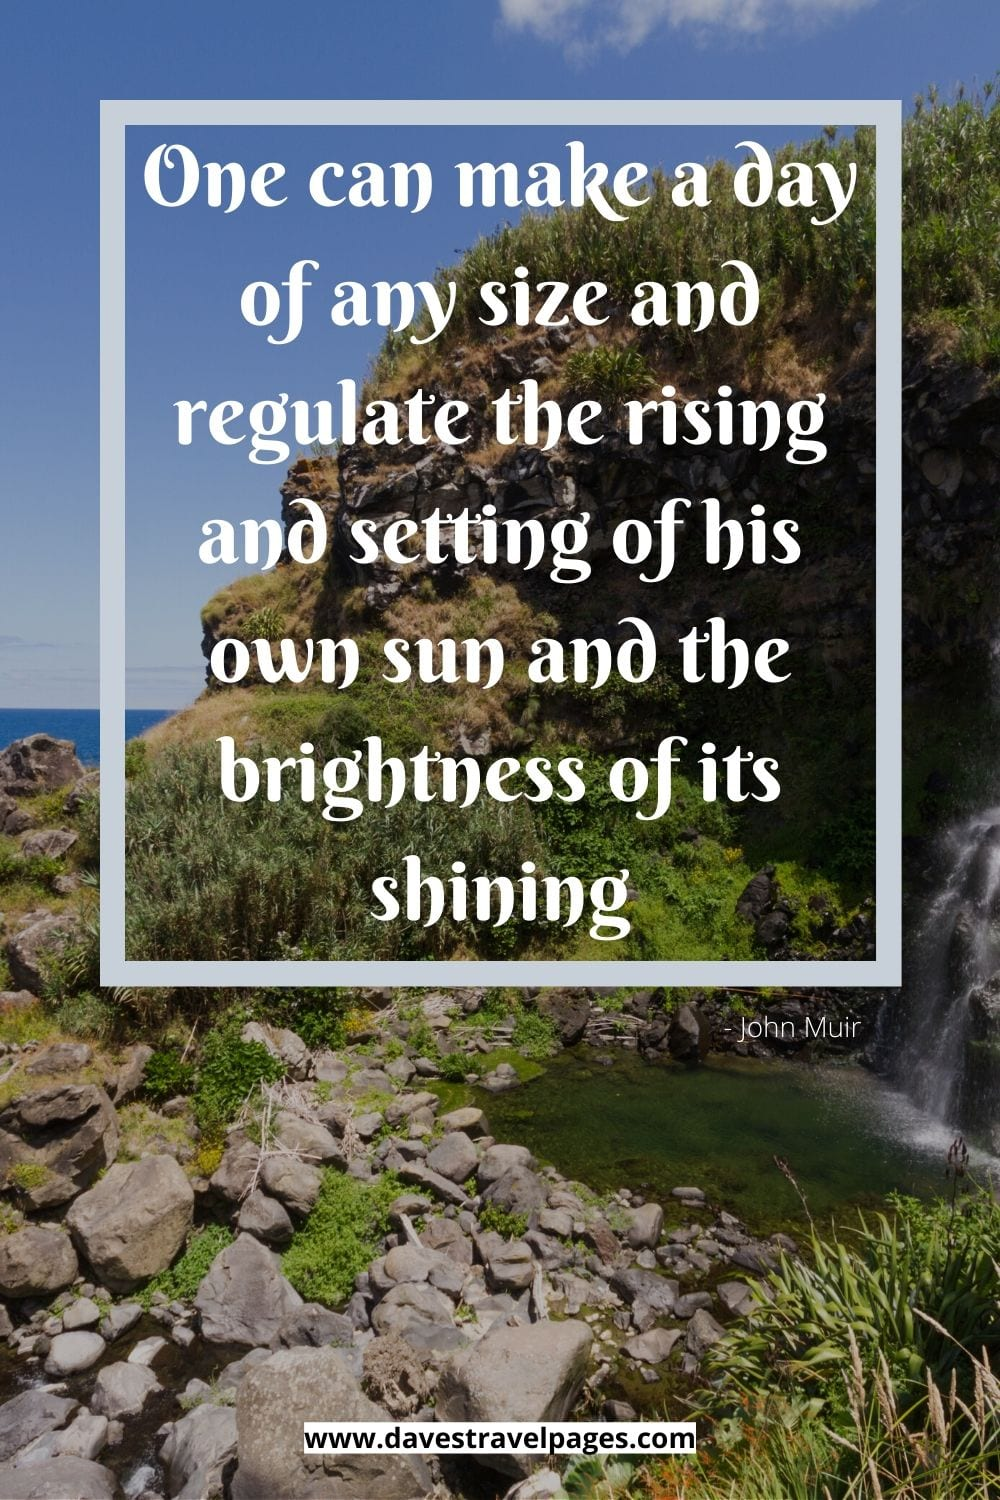 """Quote by John Muir - """"One can make a day of any size and regulate the rising and setting of his own sun and the brightness of its shining."""""""